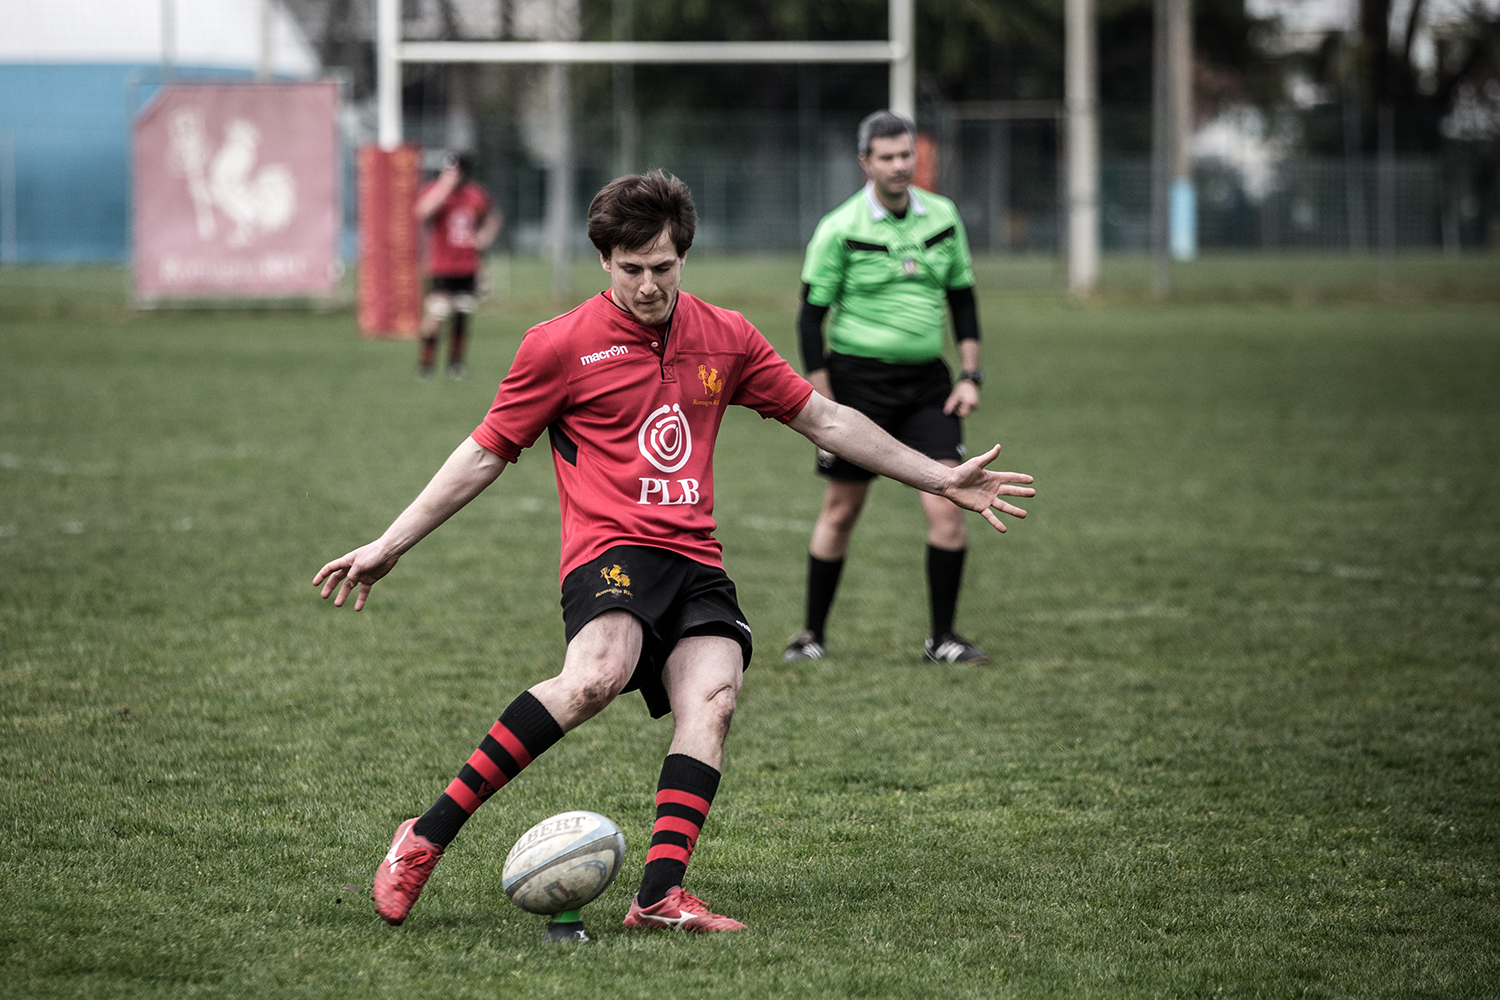 rugby_photograph_09.jpg